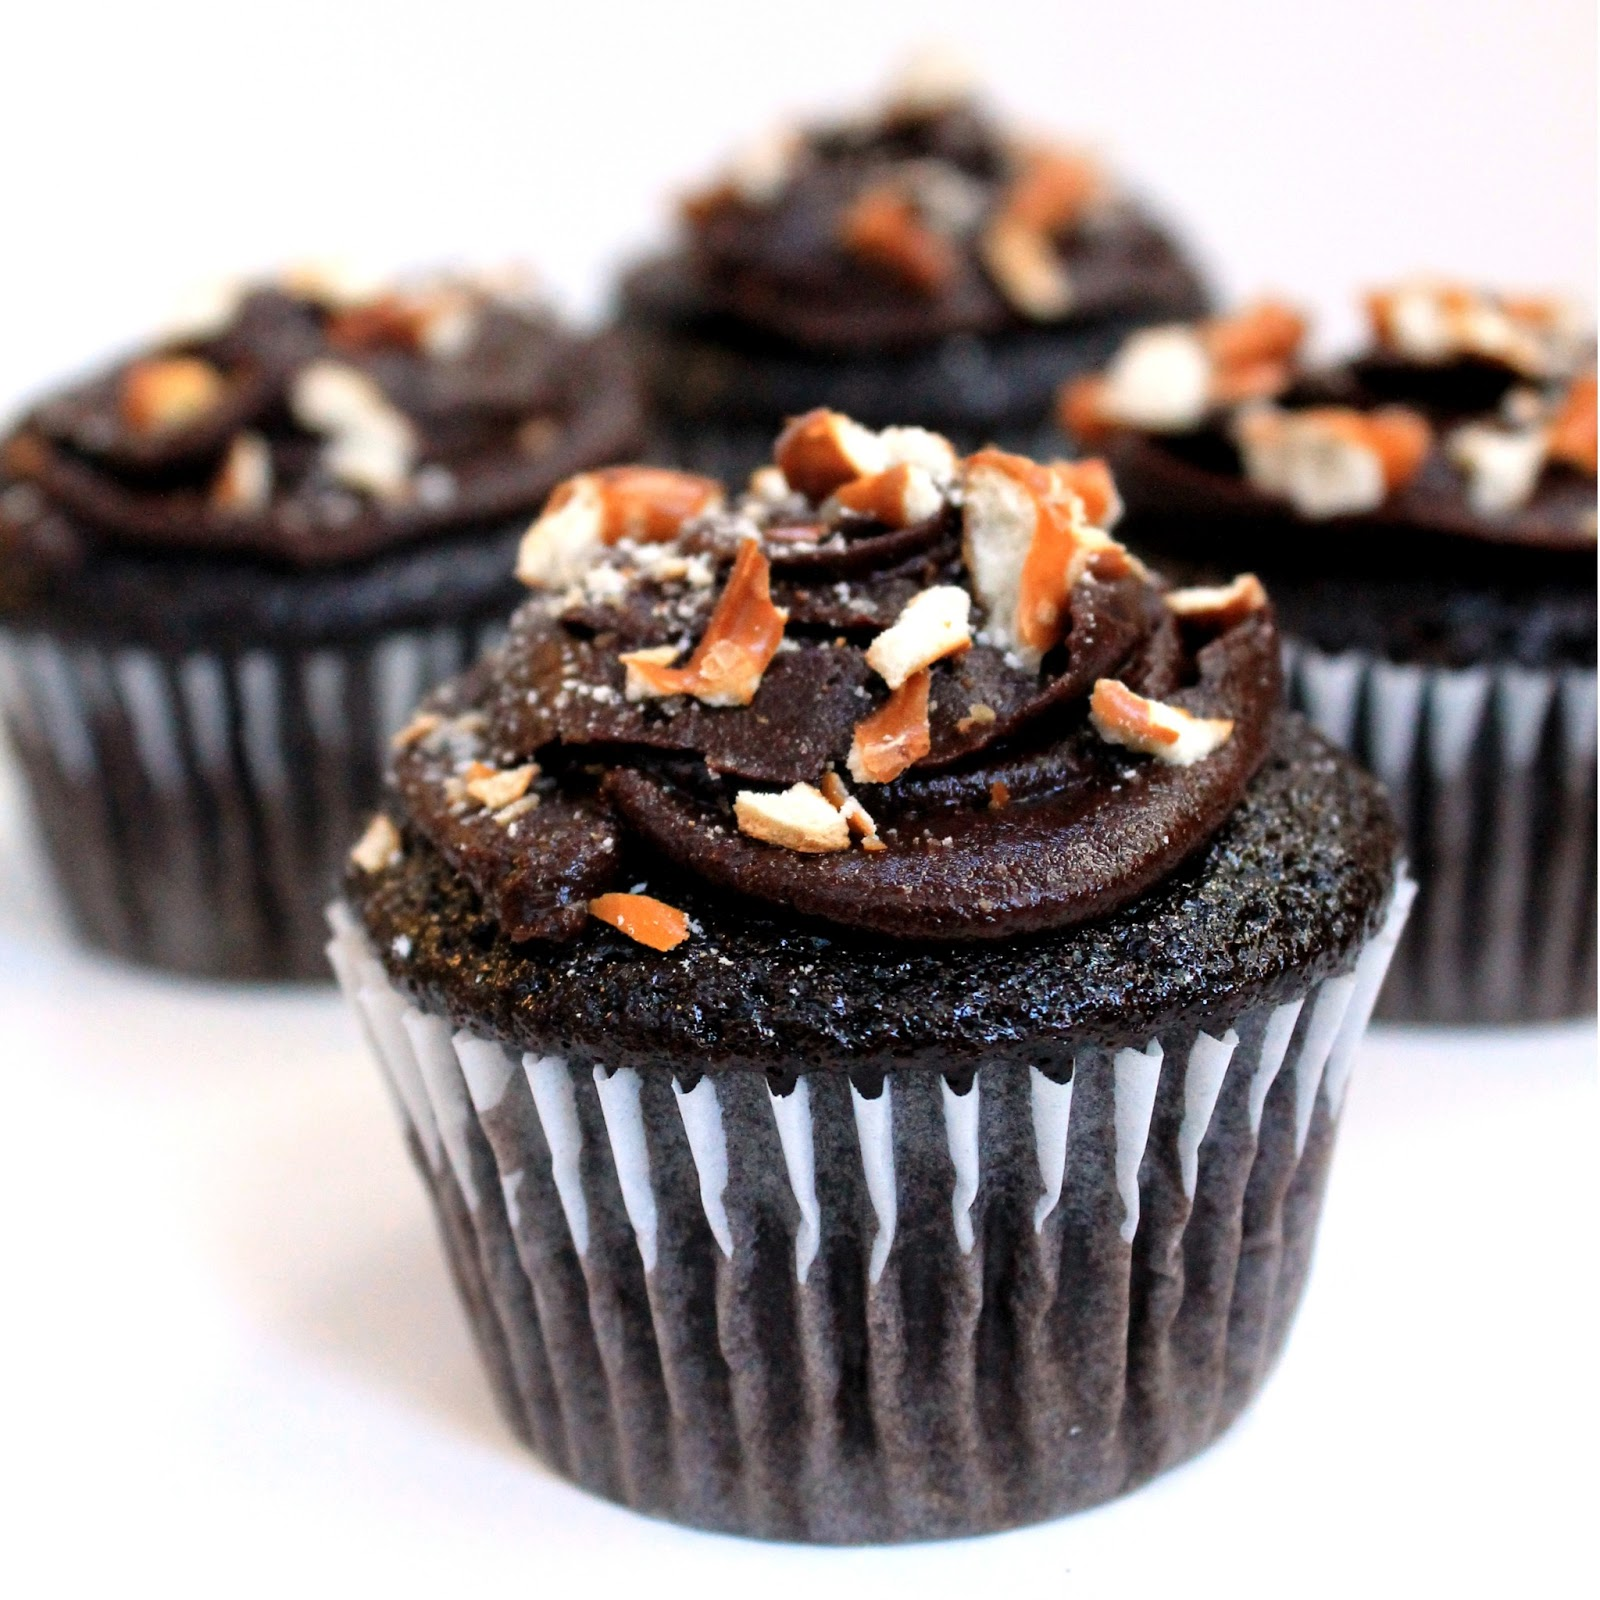 Chef: Chocolate Cupcakes with Peanut Butter Filling, Whipped Chocolate ...